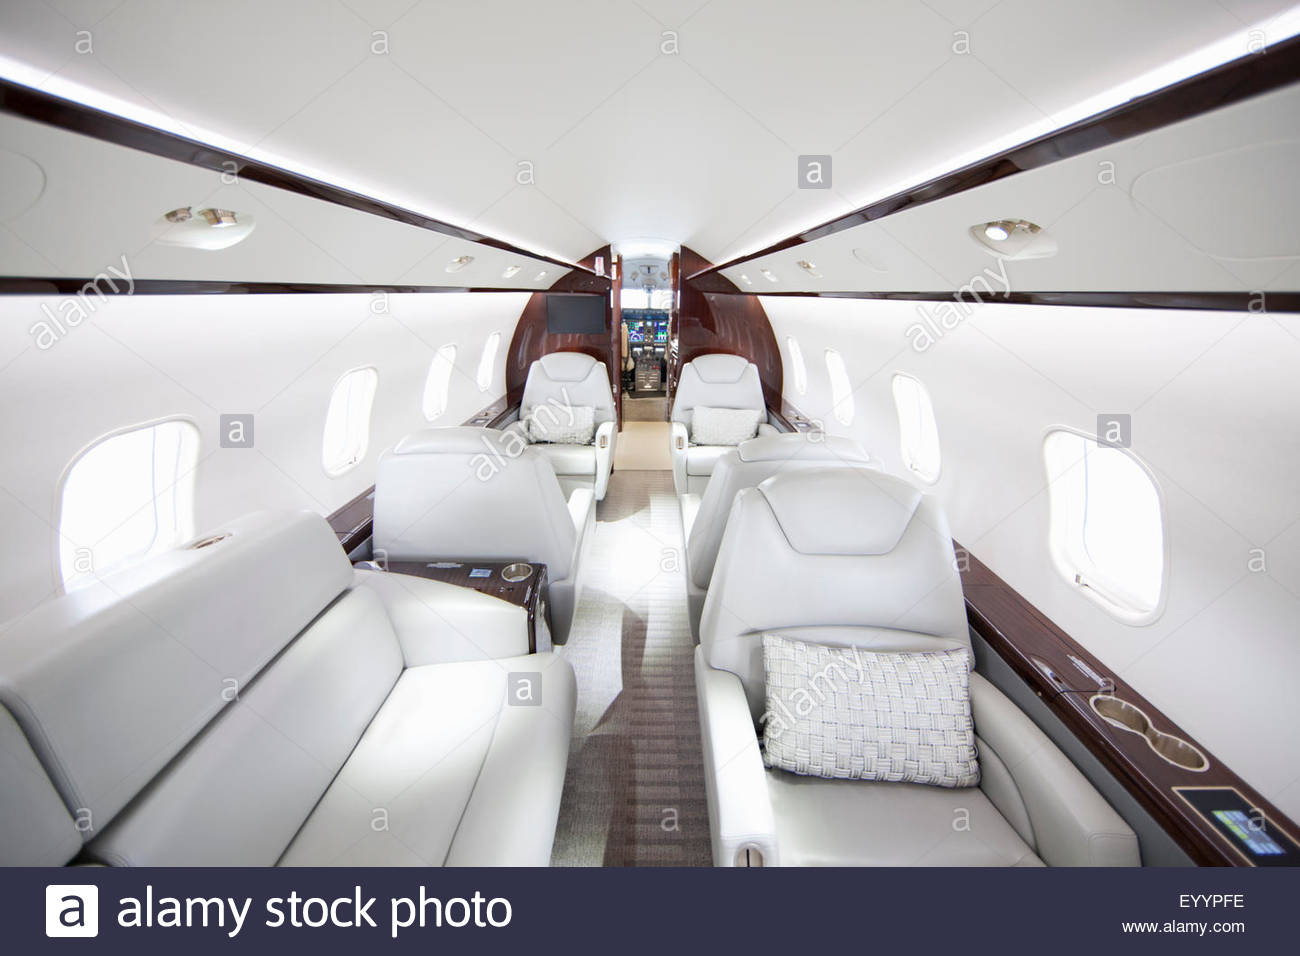 Interior of private jet - Stock Image